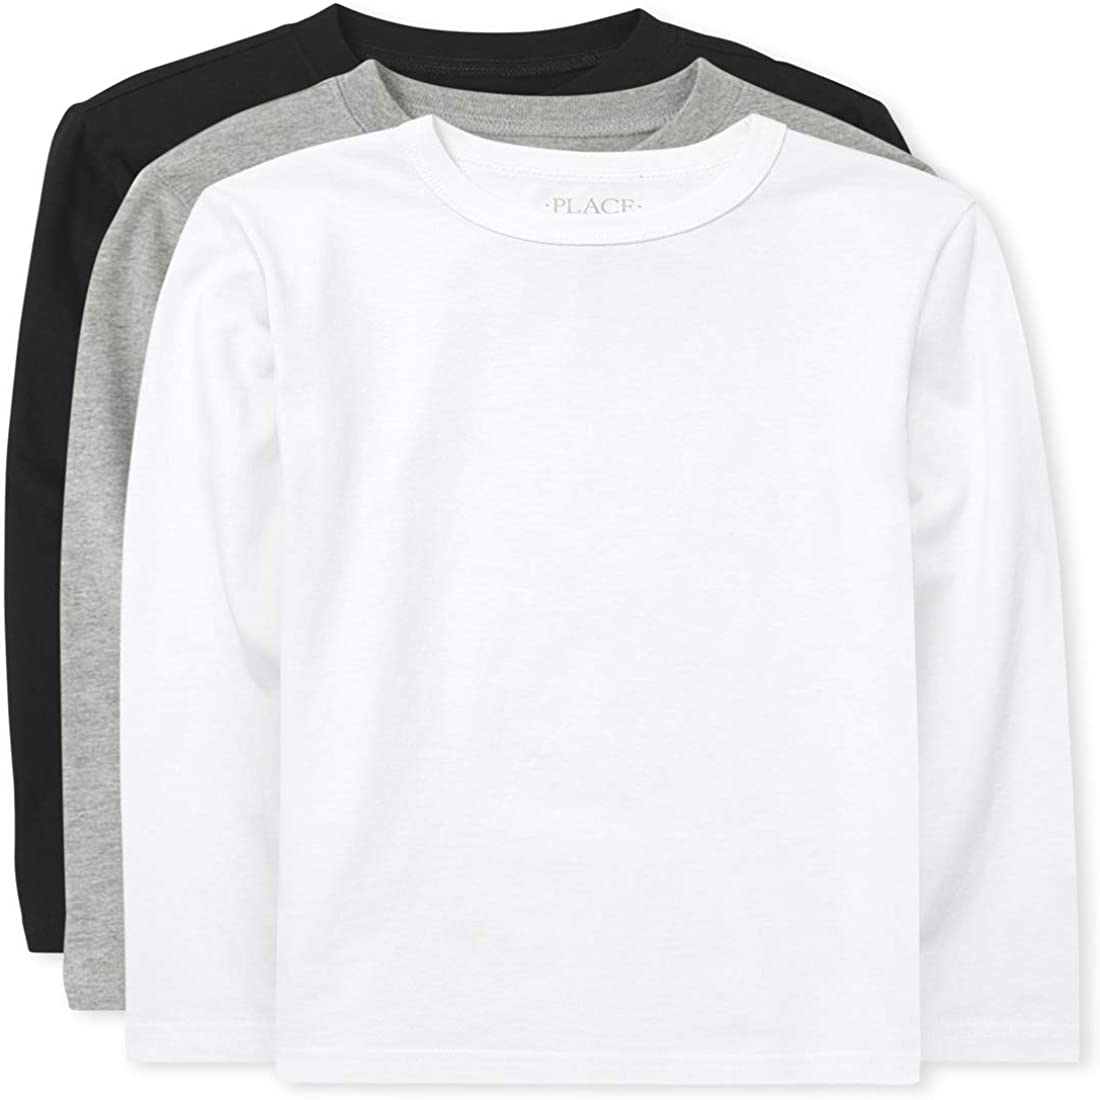 The Children's Place Boys' Uniform Basic Layering Tee 4-Pack